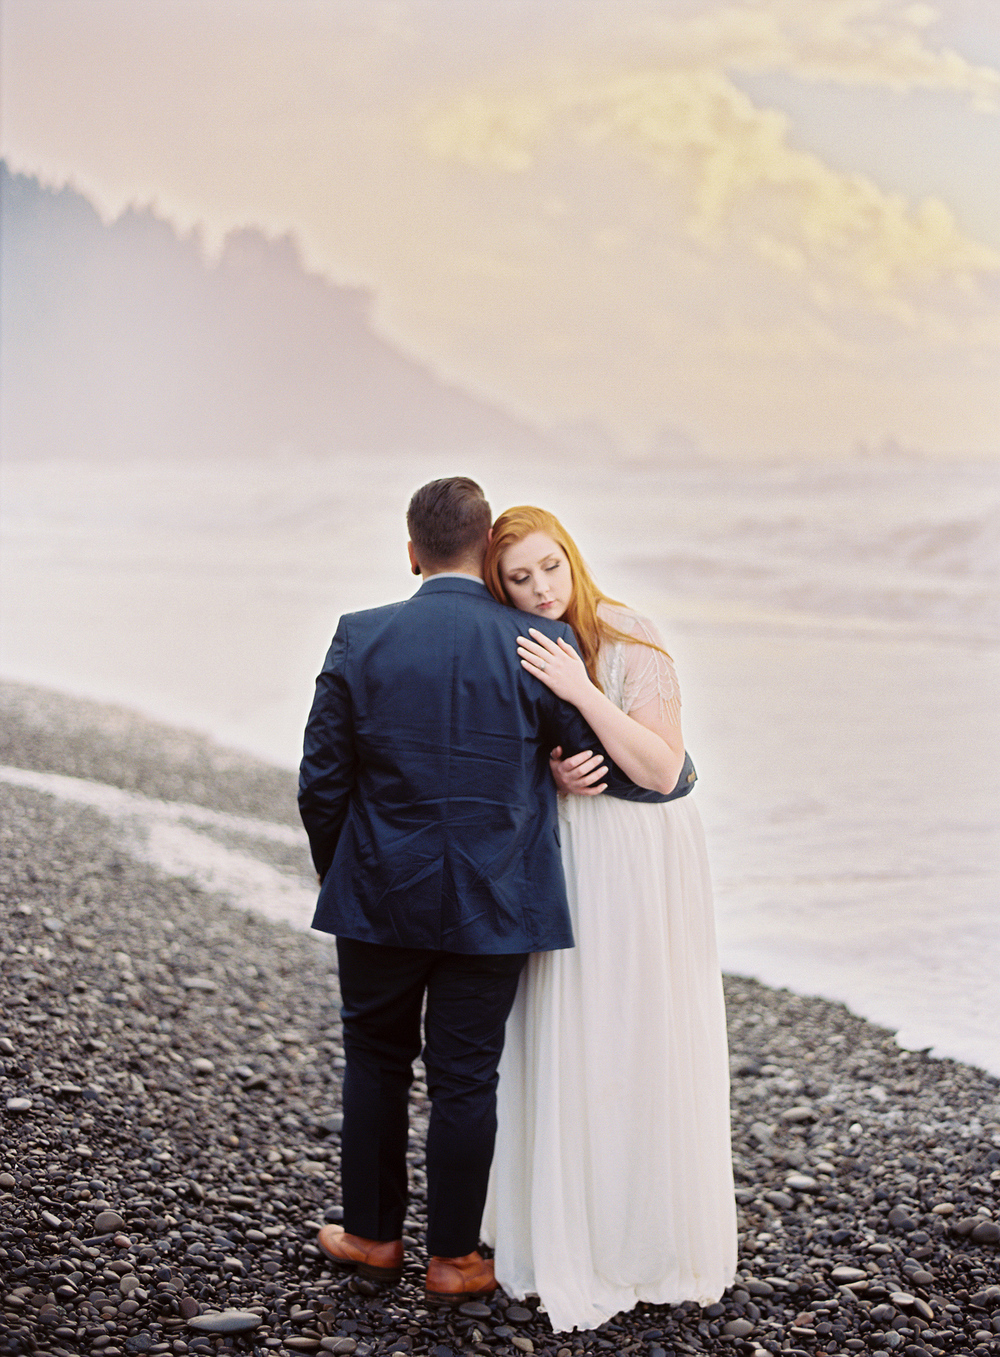 la-push-film-elopement-ryan-flynn-photography-0048.JPG